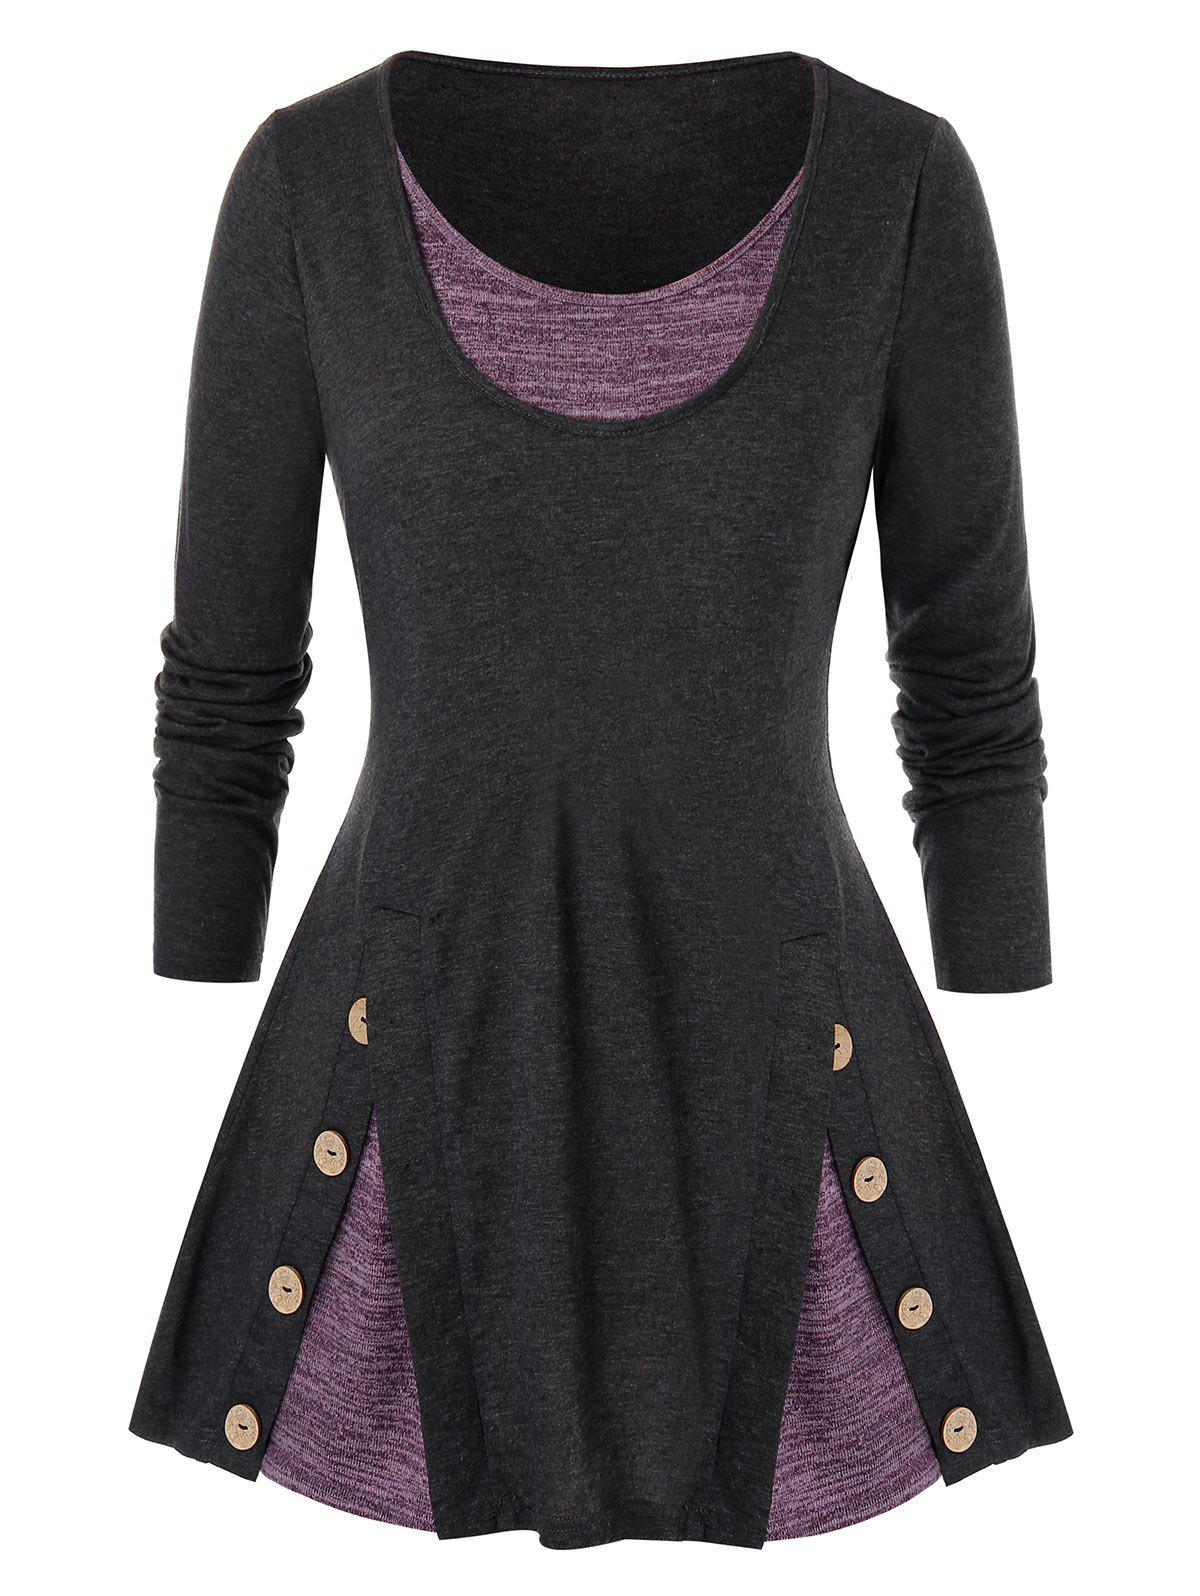 Plus Size Contrast Heathered Mock Button Faux Twinset T-shirt - DARK GRAY 2X